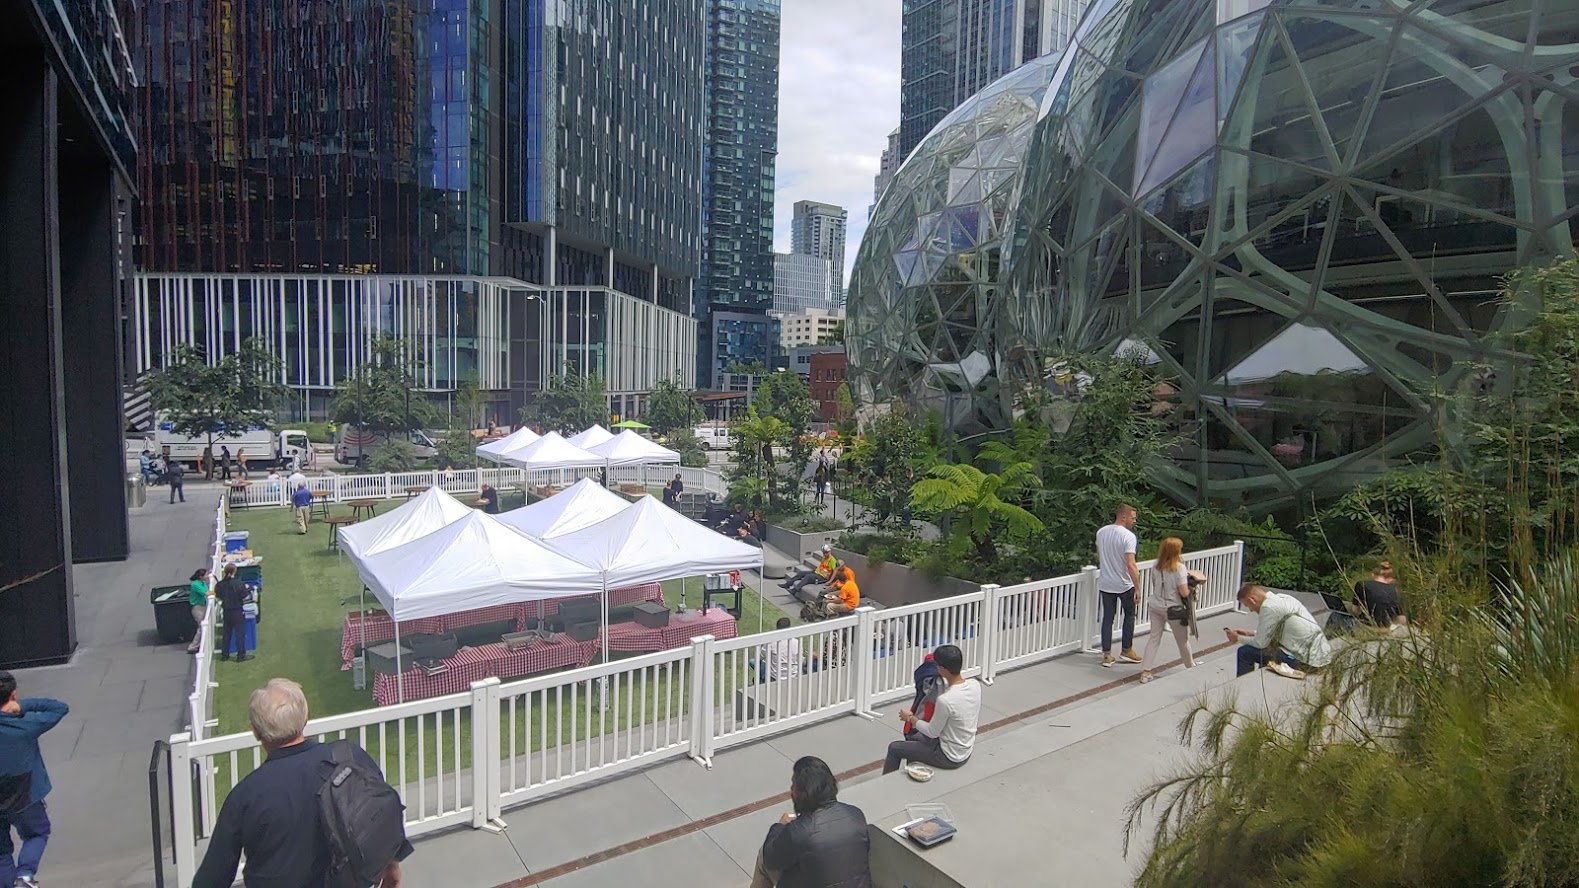 Amazon Sphere's are the landmarks that define its headquarters